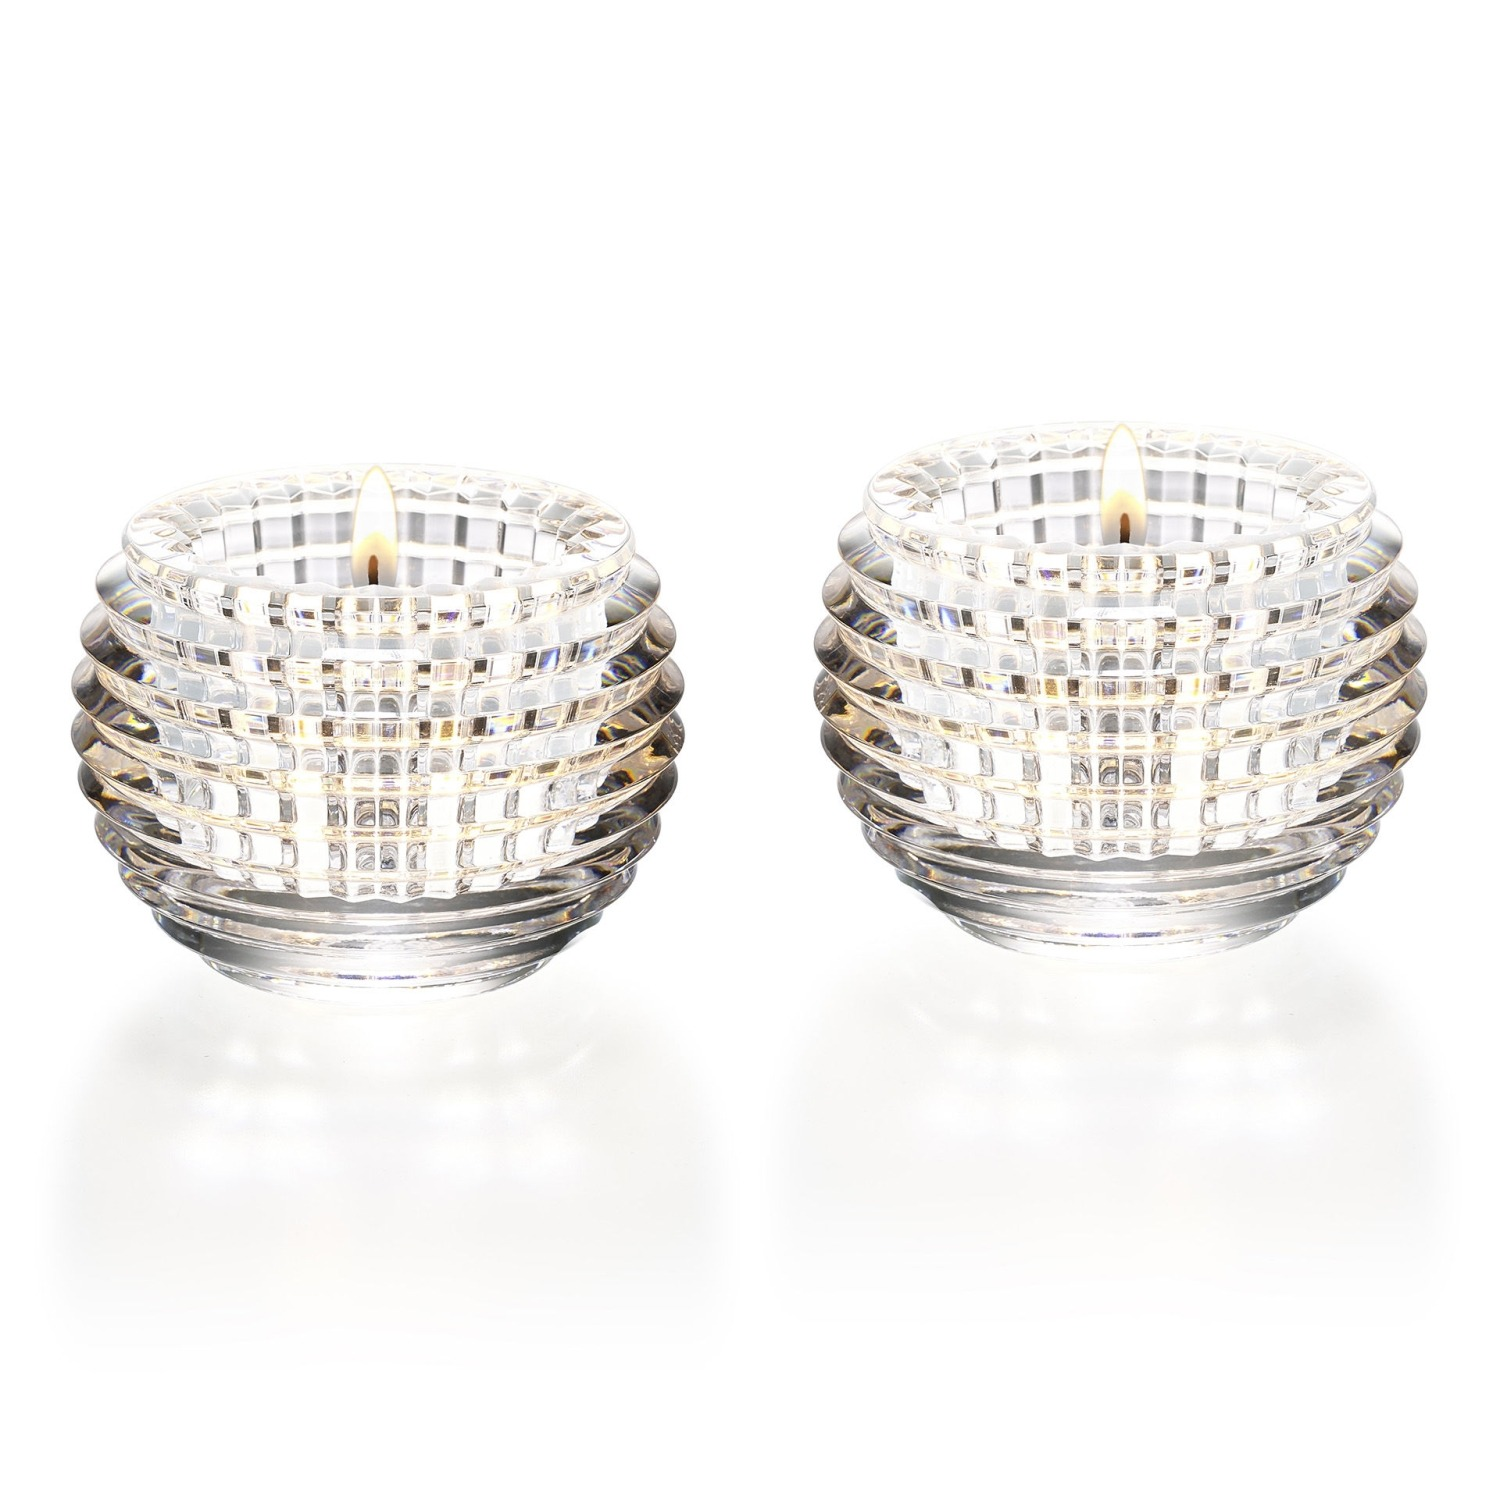 EYE CANDLE HOLDER SET OF 2